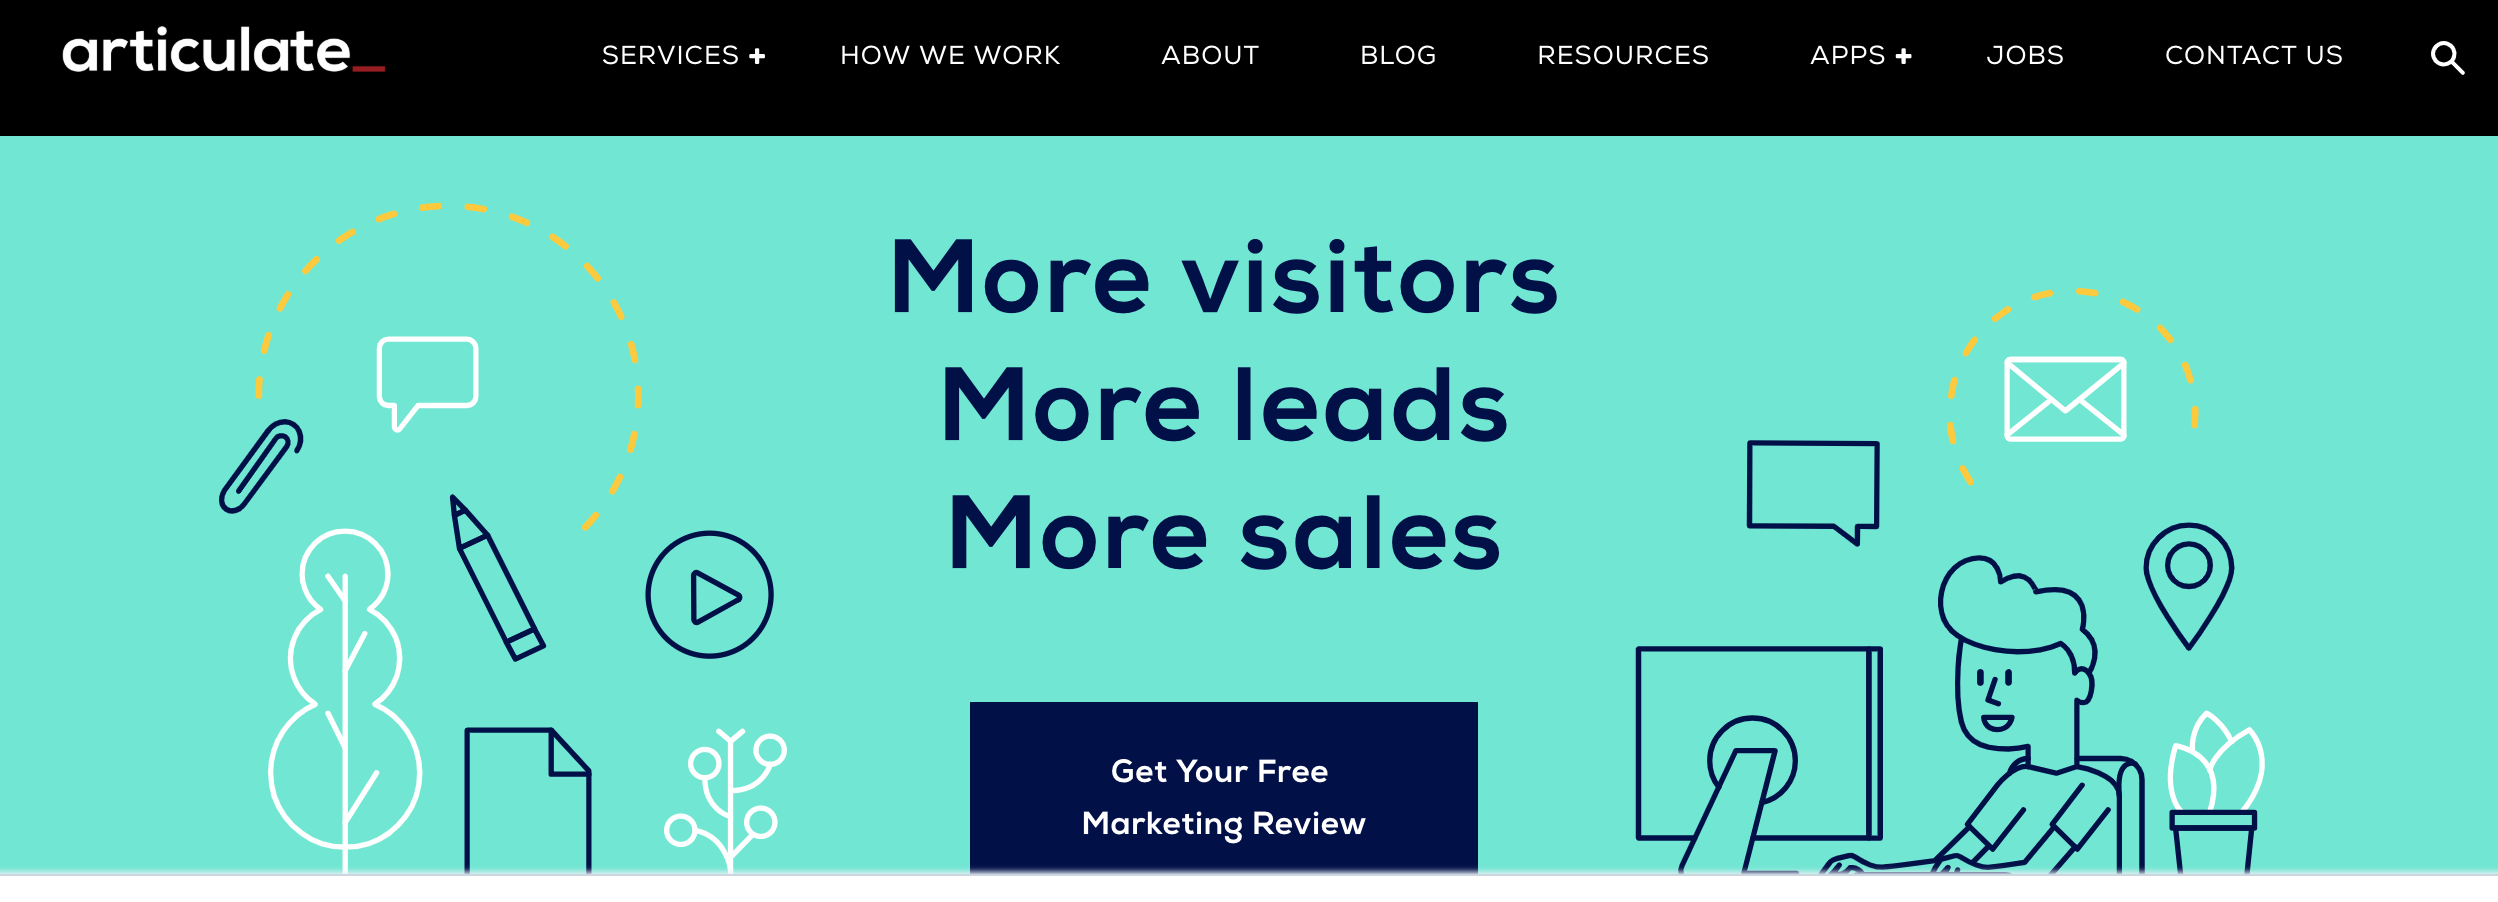 Articulate marketing's home page